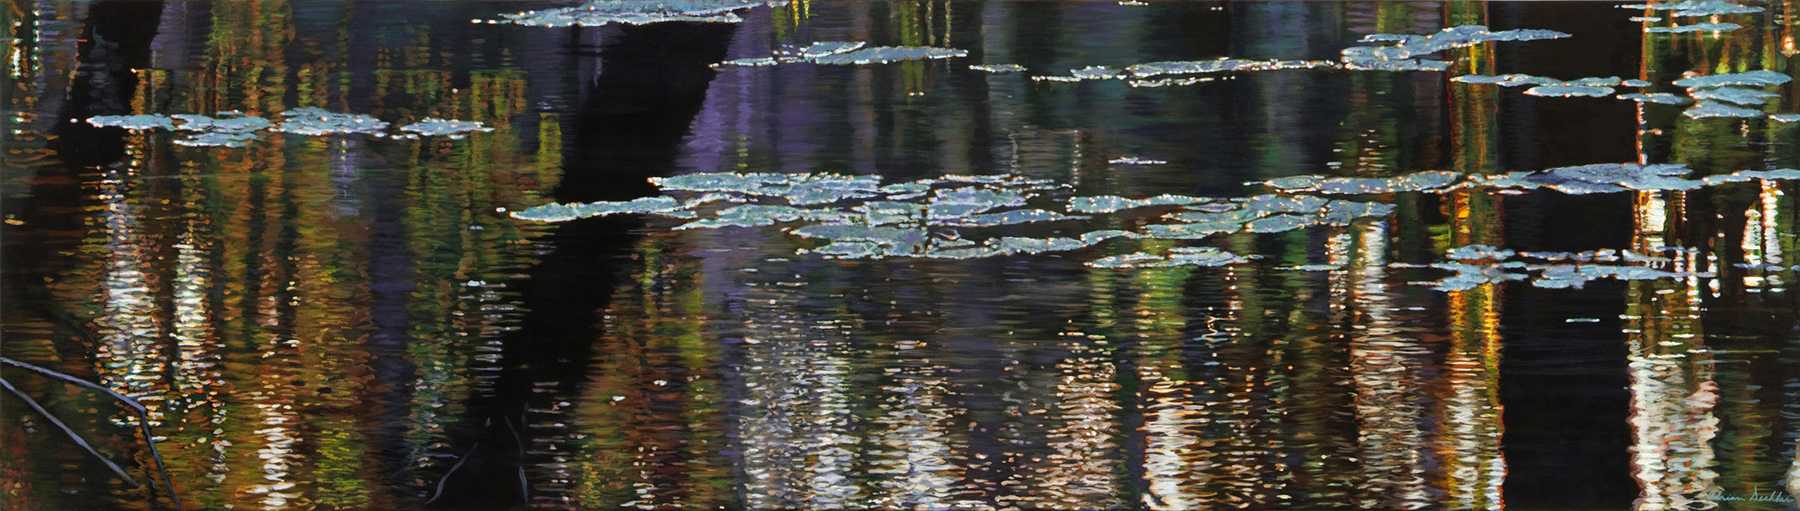 """Immersion , acrylic, 24"""" x 96"""", 2013"""